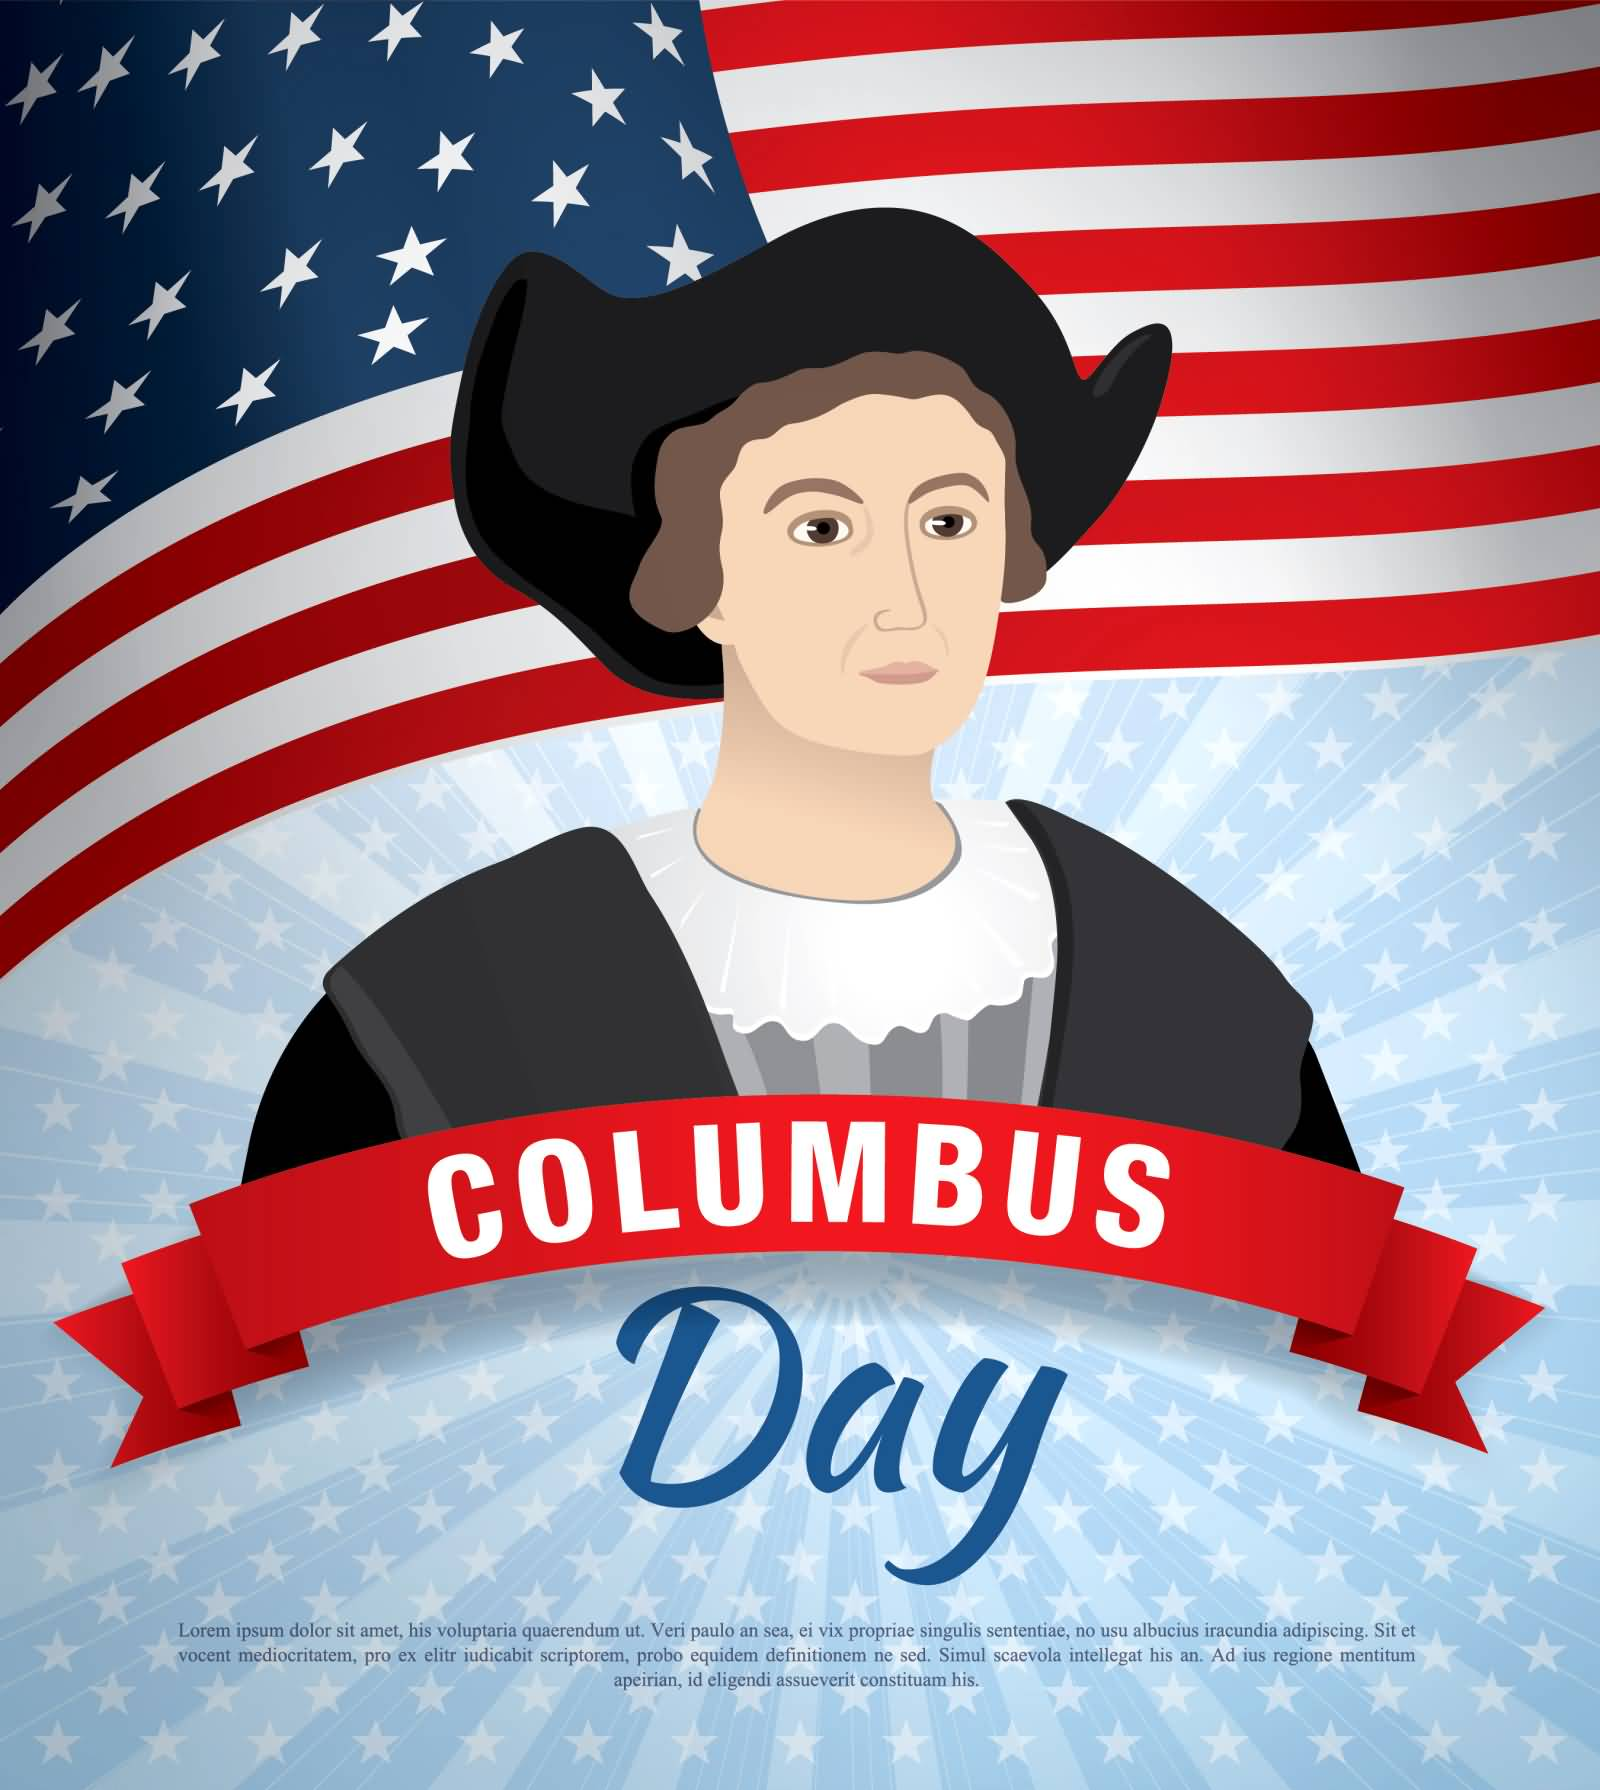 early days of christopher columbus Columbus landed in america from 1201-1500 church history timeline   christopher was a very devout catholic who observed all the fasts of the church  and.